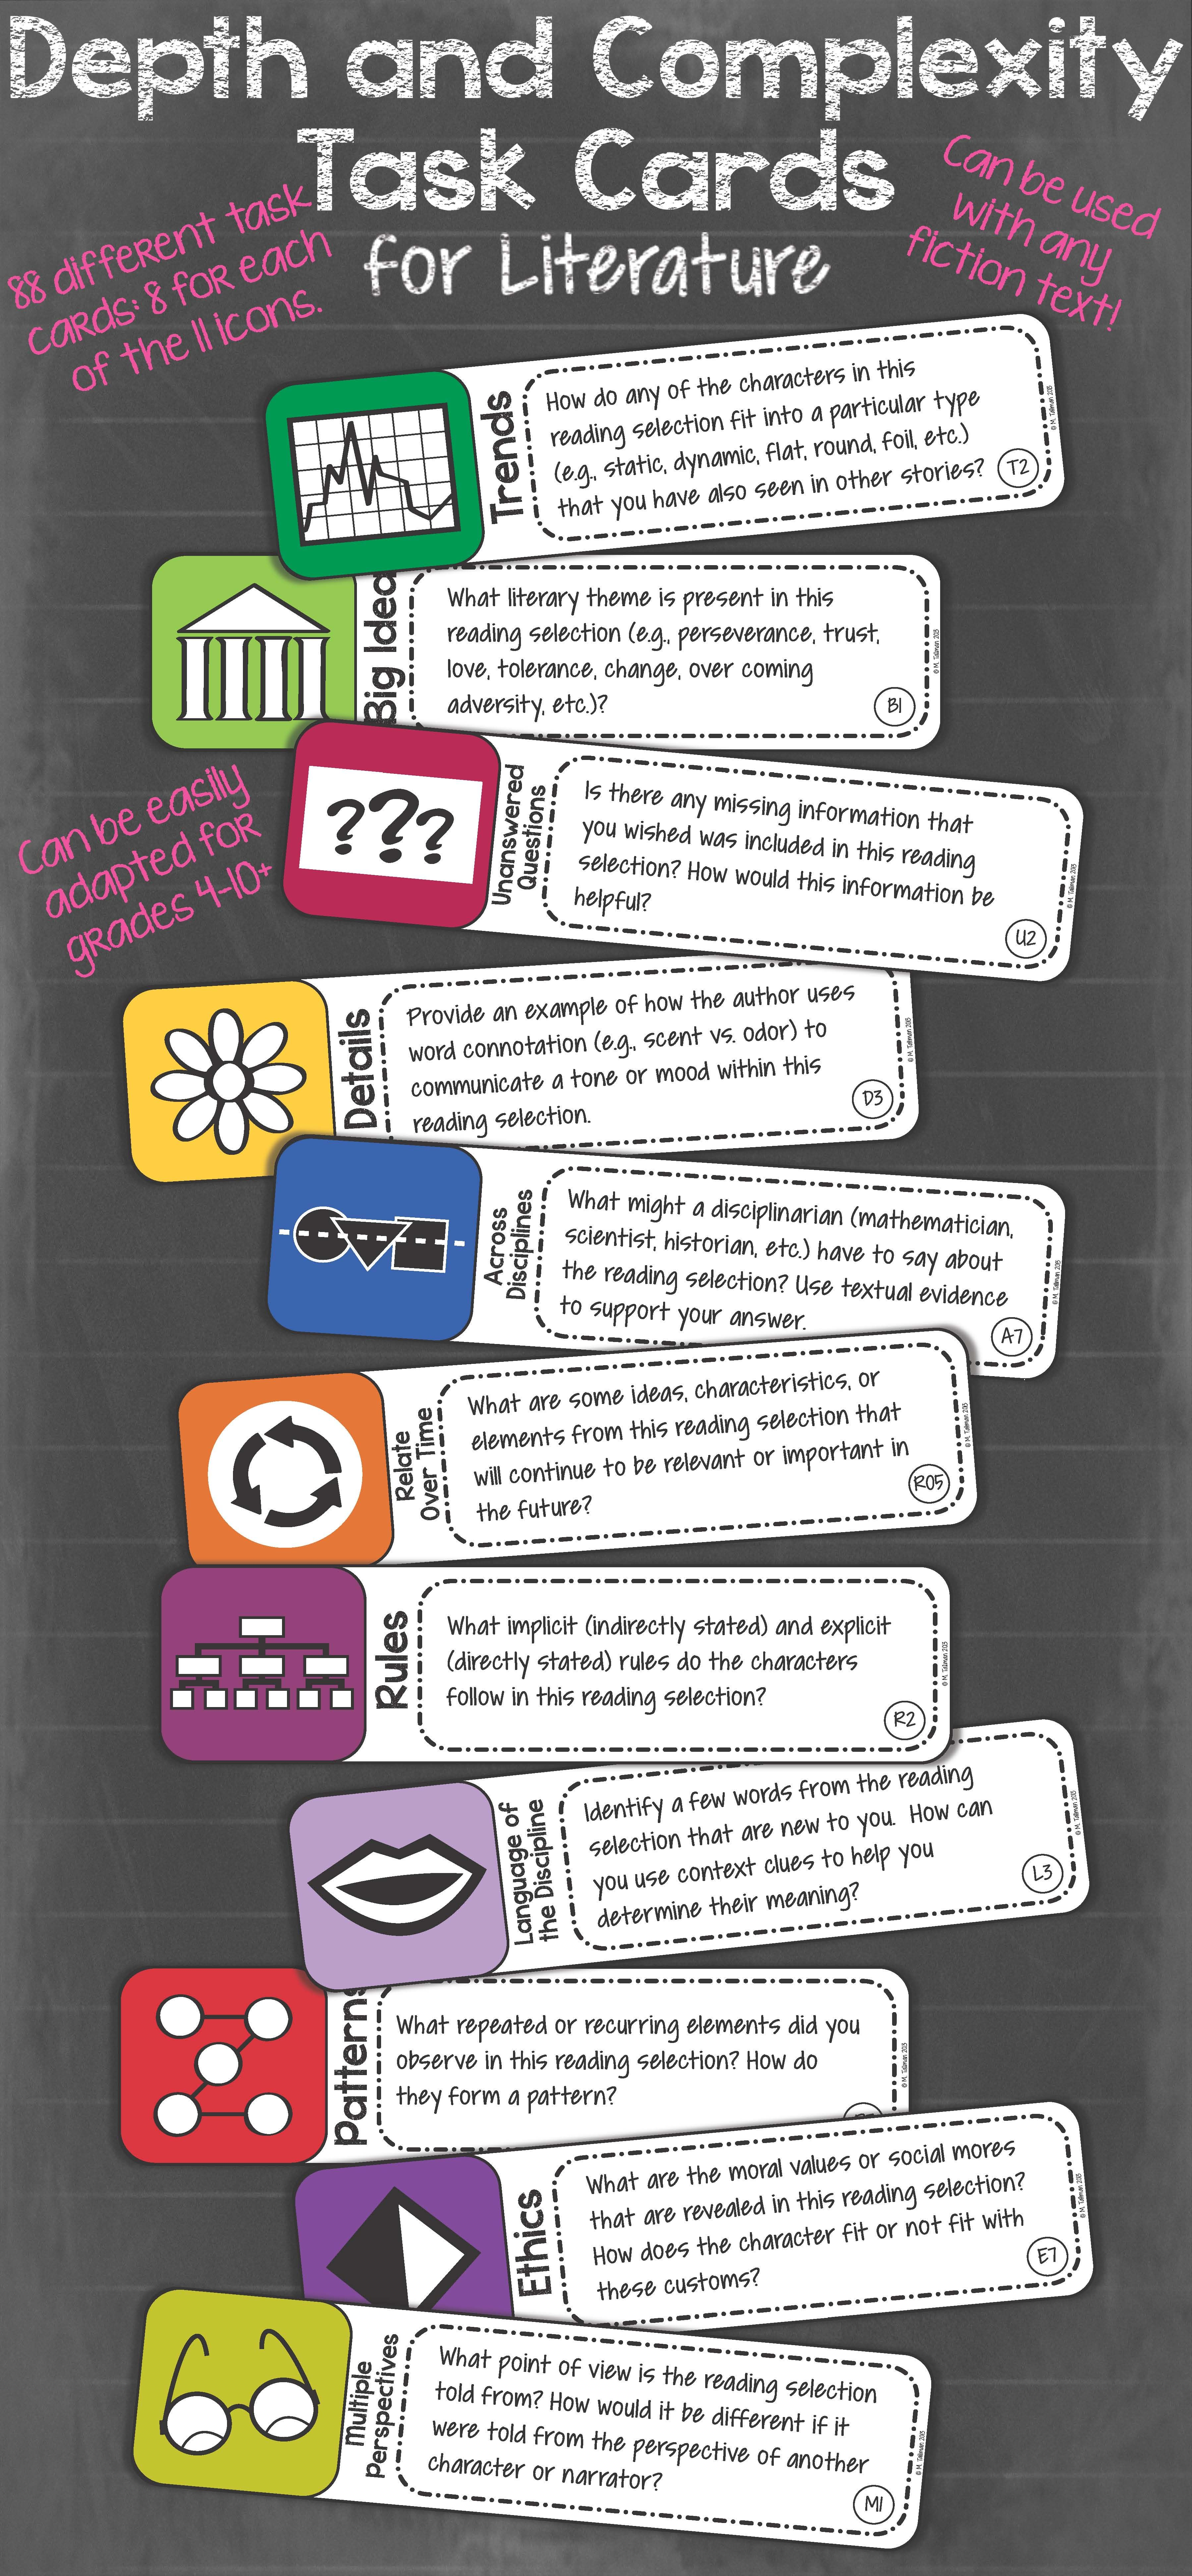 Depth And Complexity Critical Thinking Task Cards For Literature Common Core